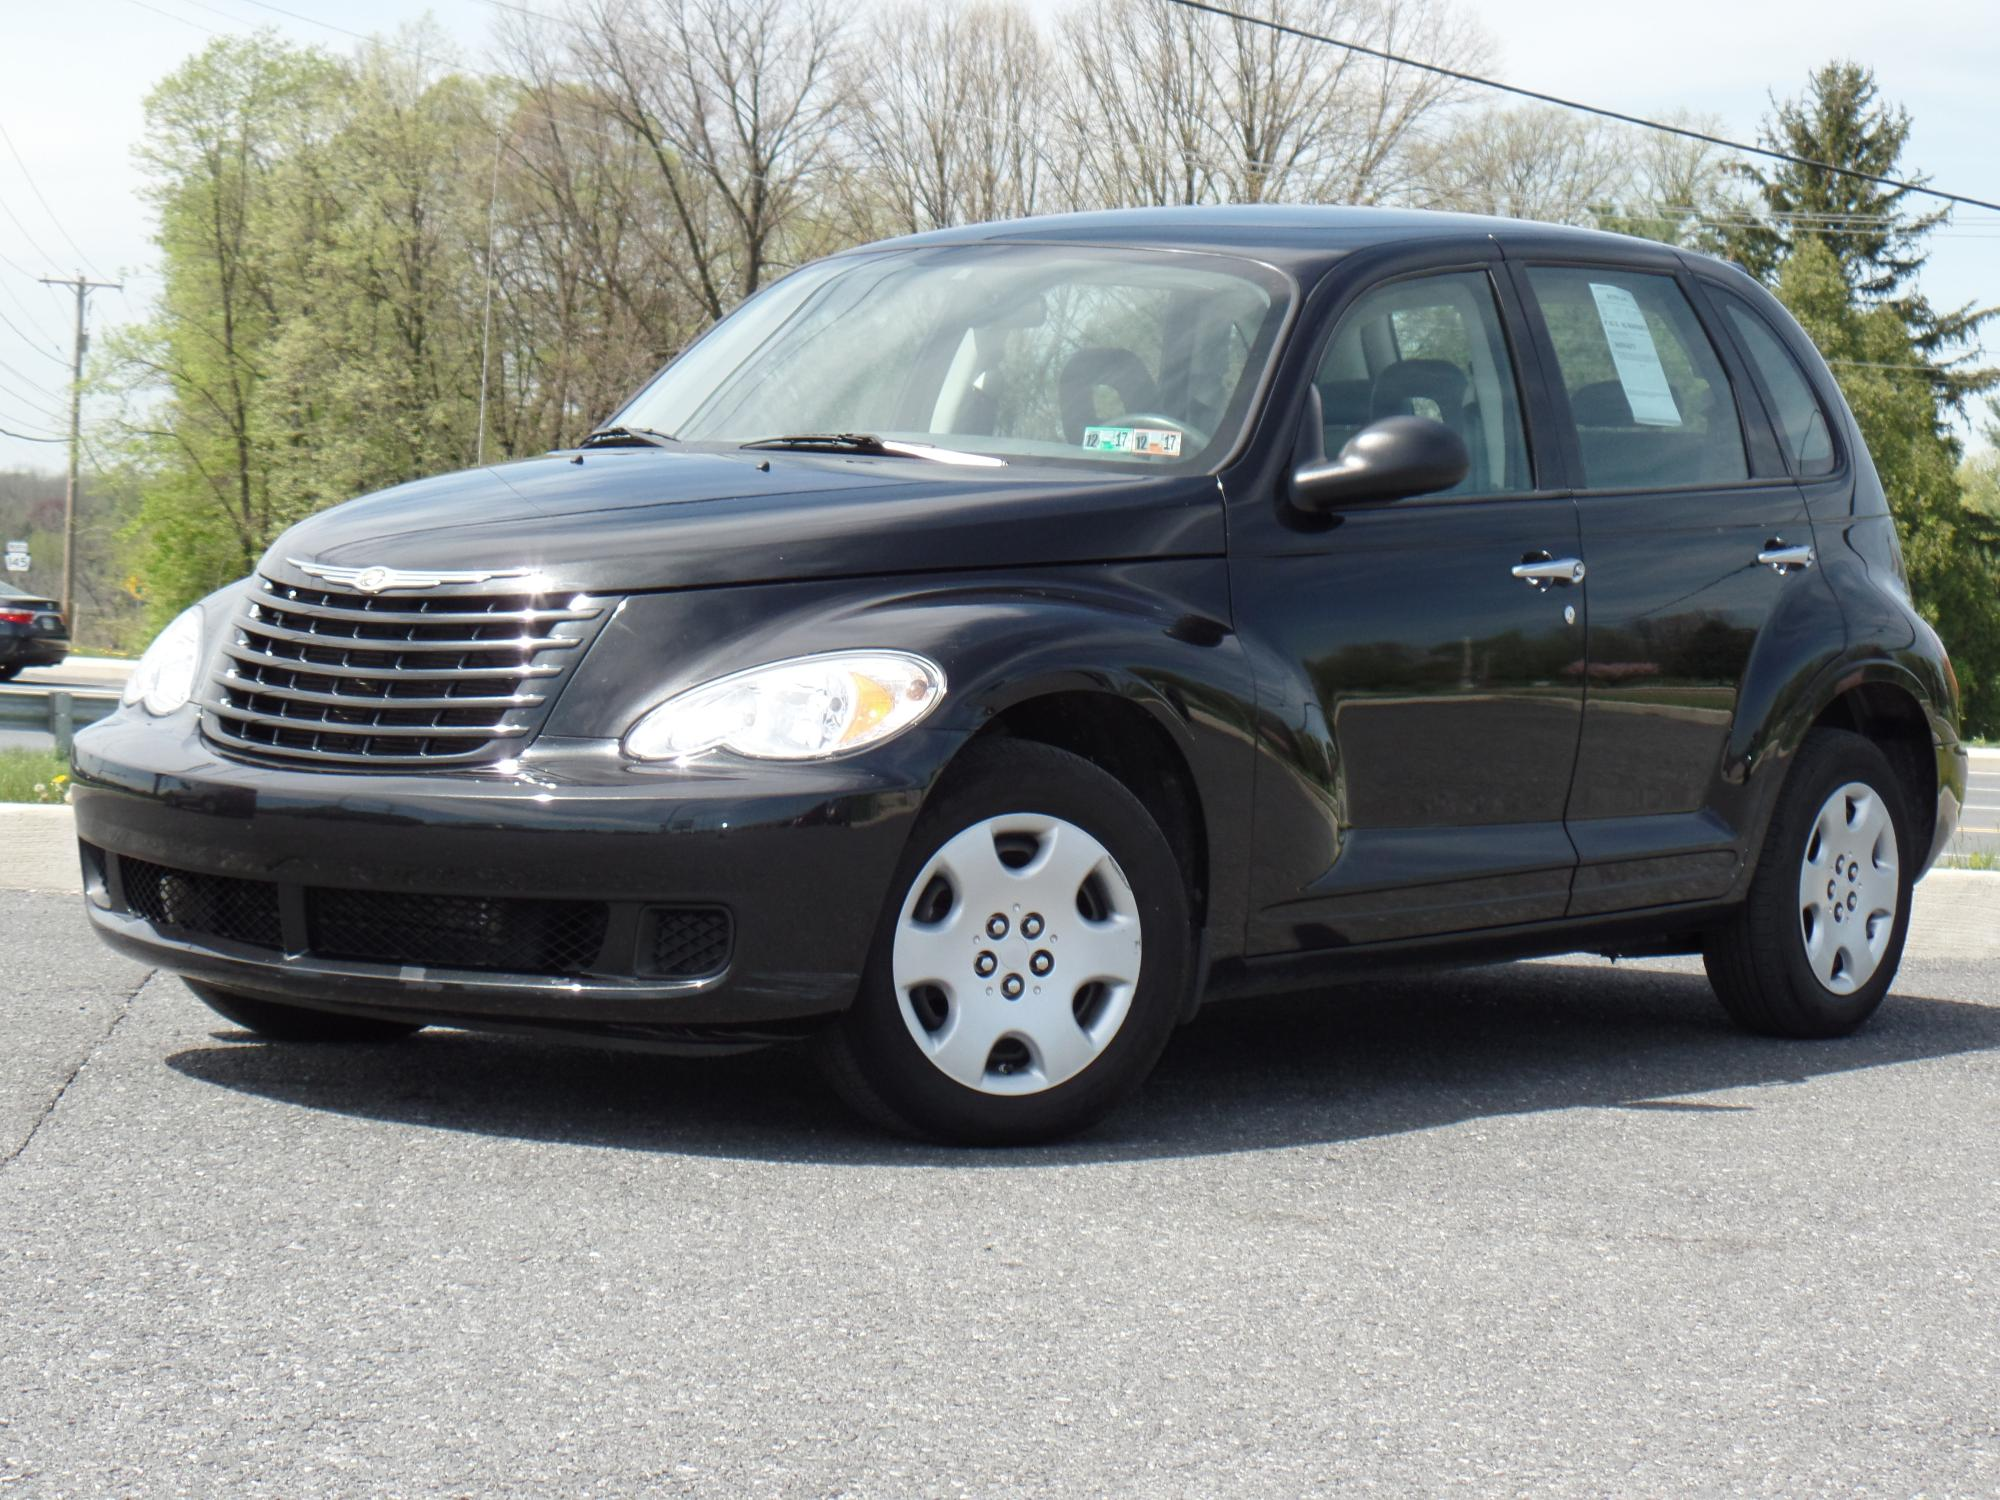 4-28-2017_2009_Chrysler_PT_Cruiser_540698__1_.JPG